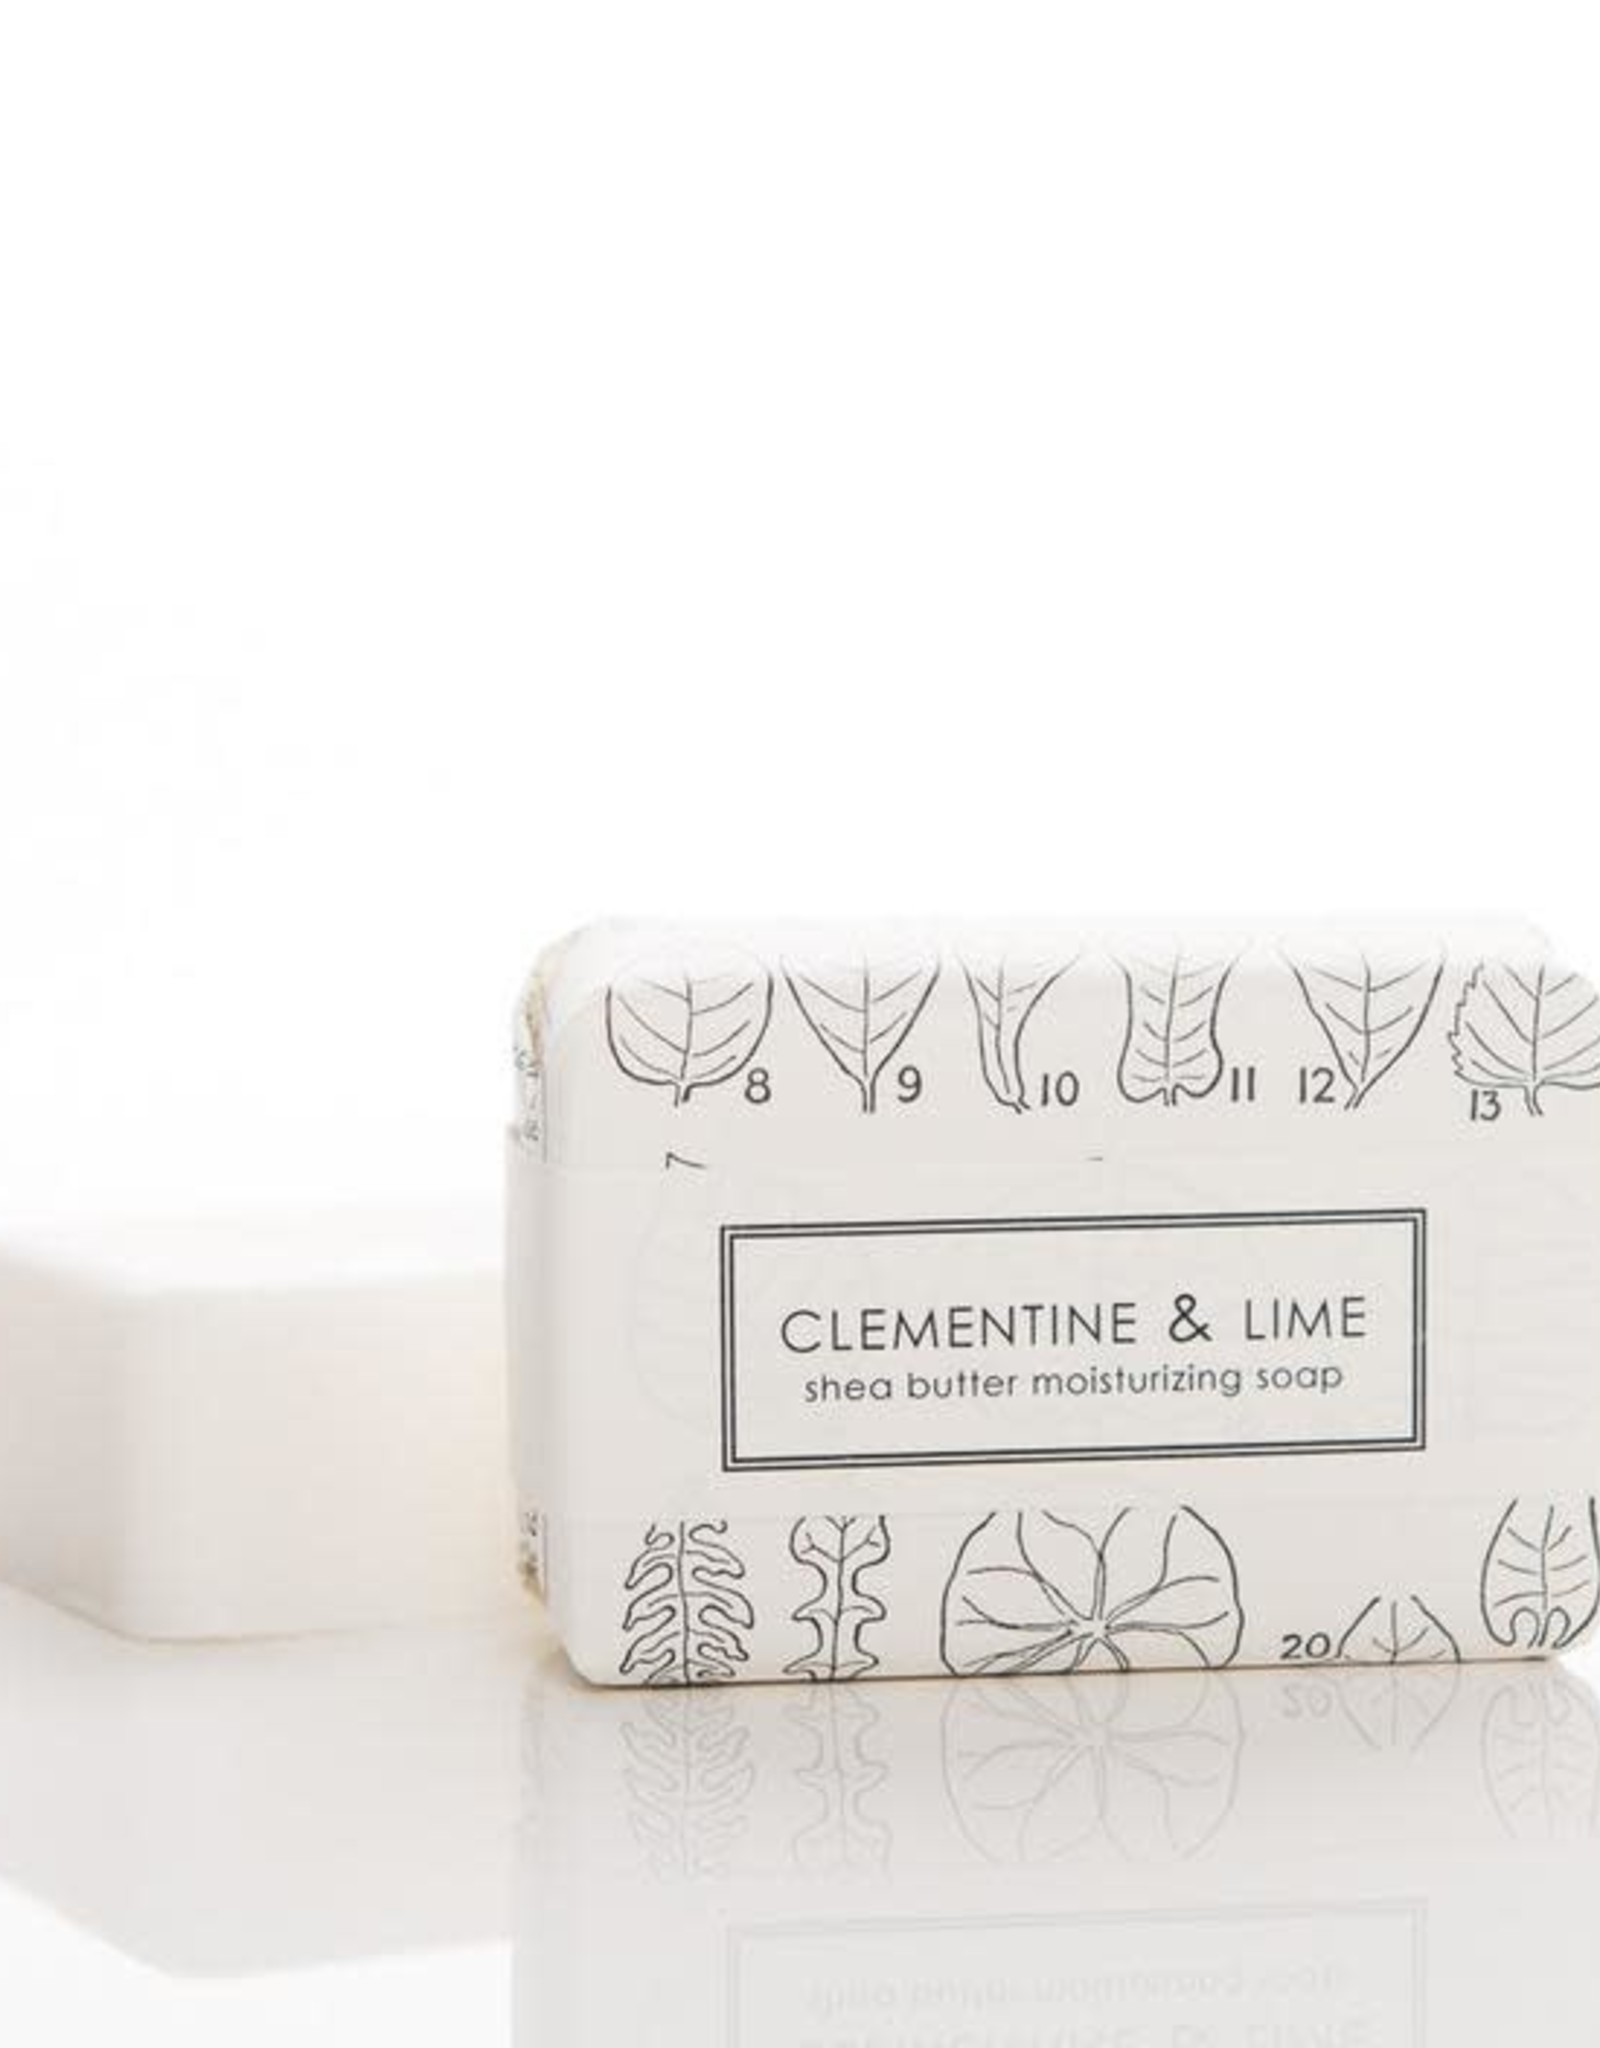 Formulary 55 Clementine & Lime Soap